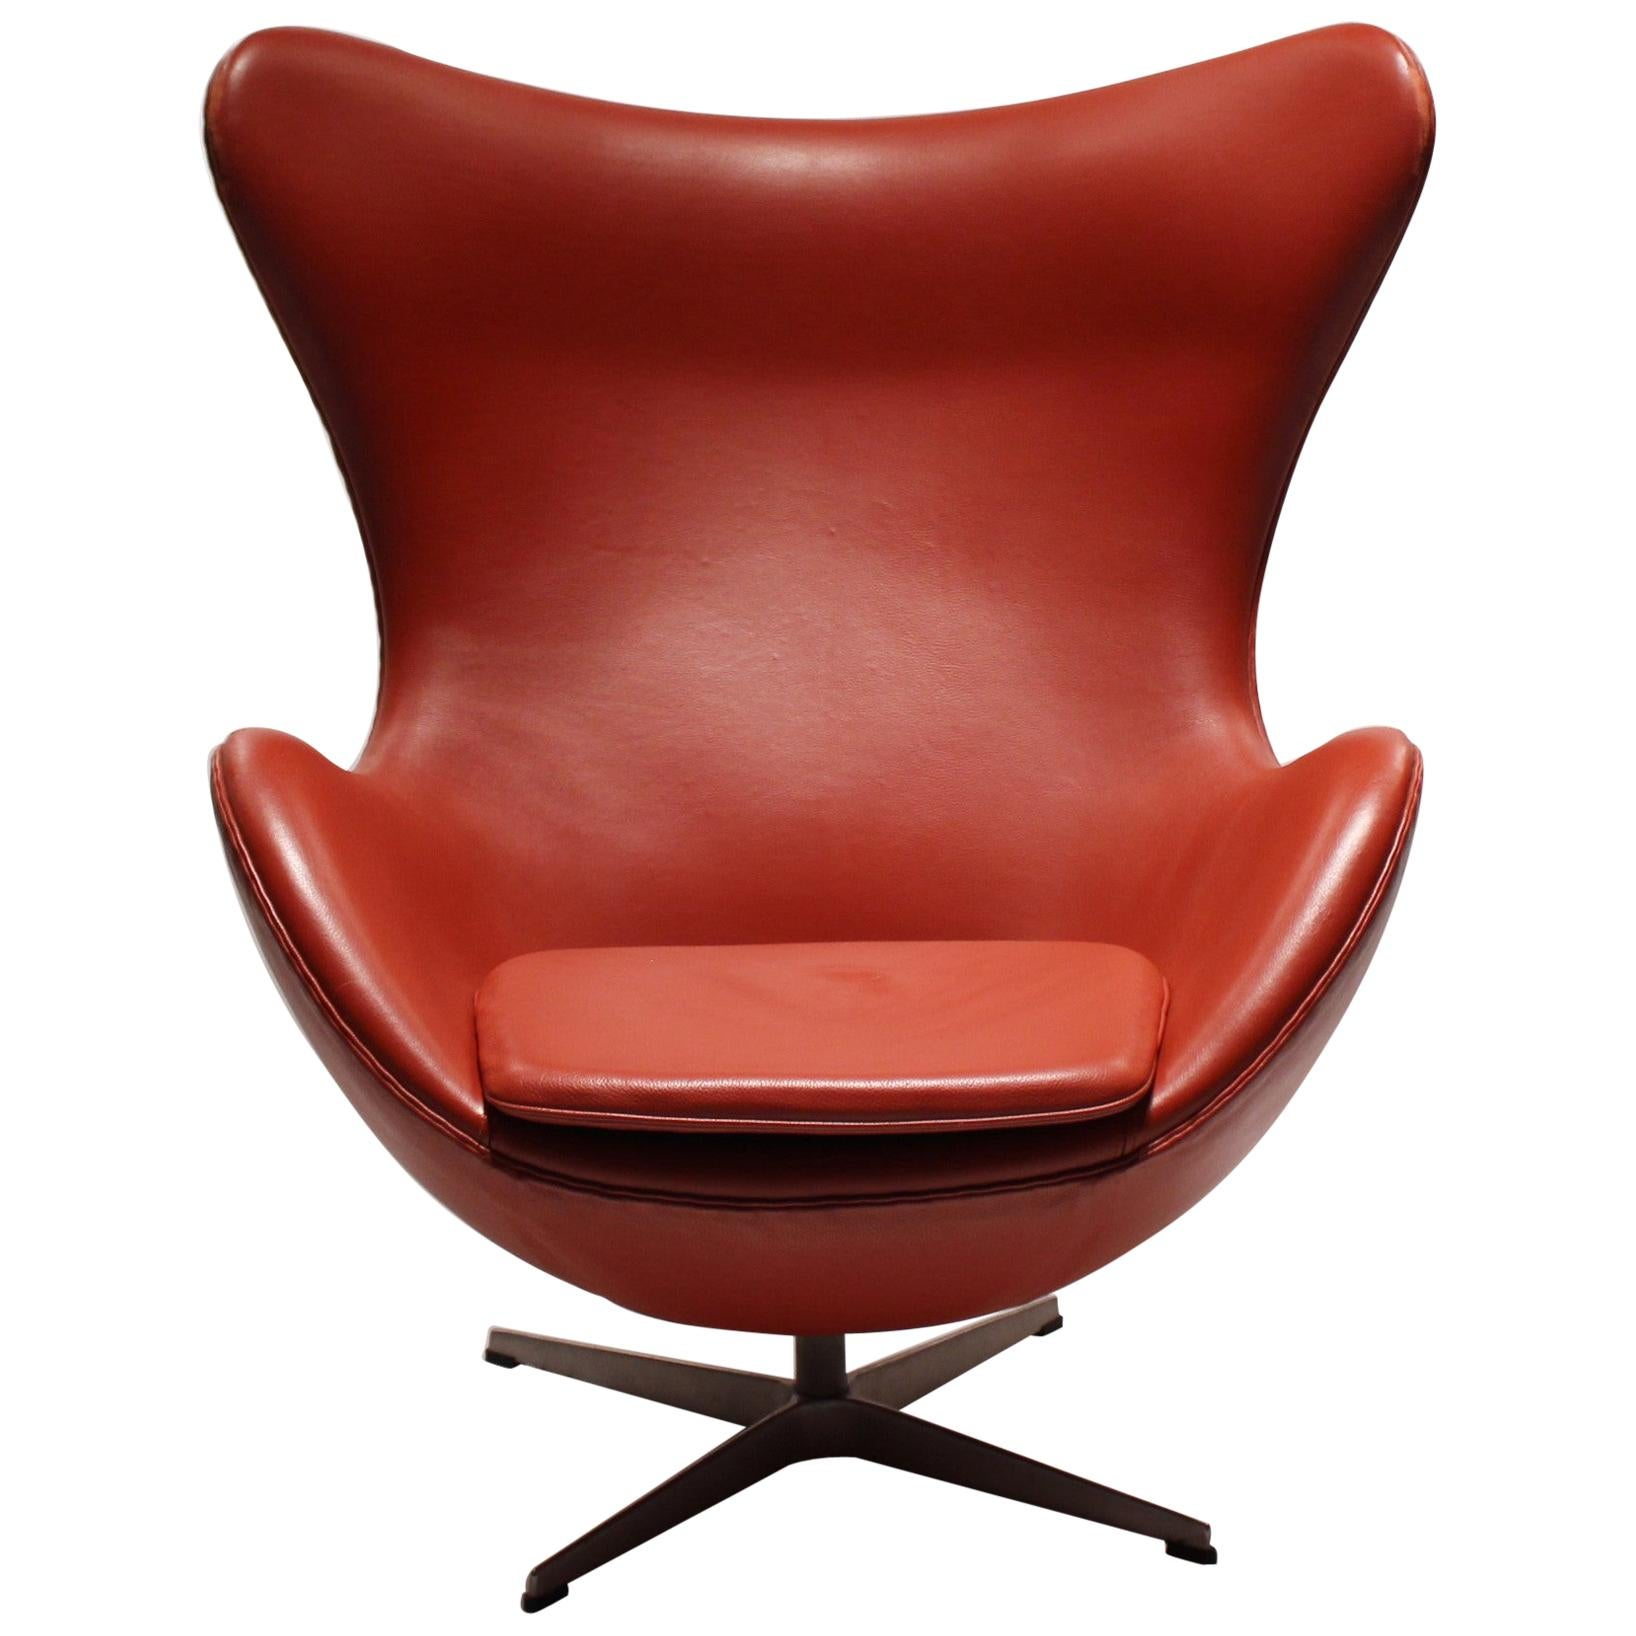 The Egg, Model 3316, Red Leather, by Arne Jacobsen and Fritz Ansen, 2001